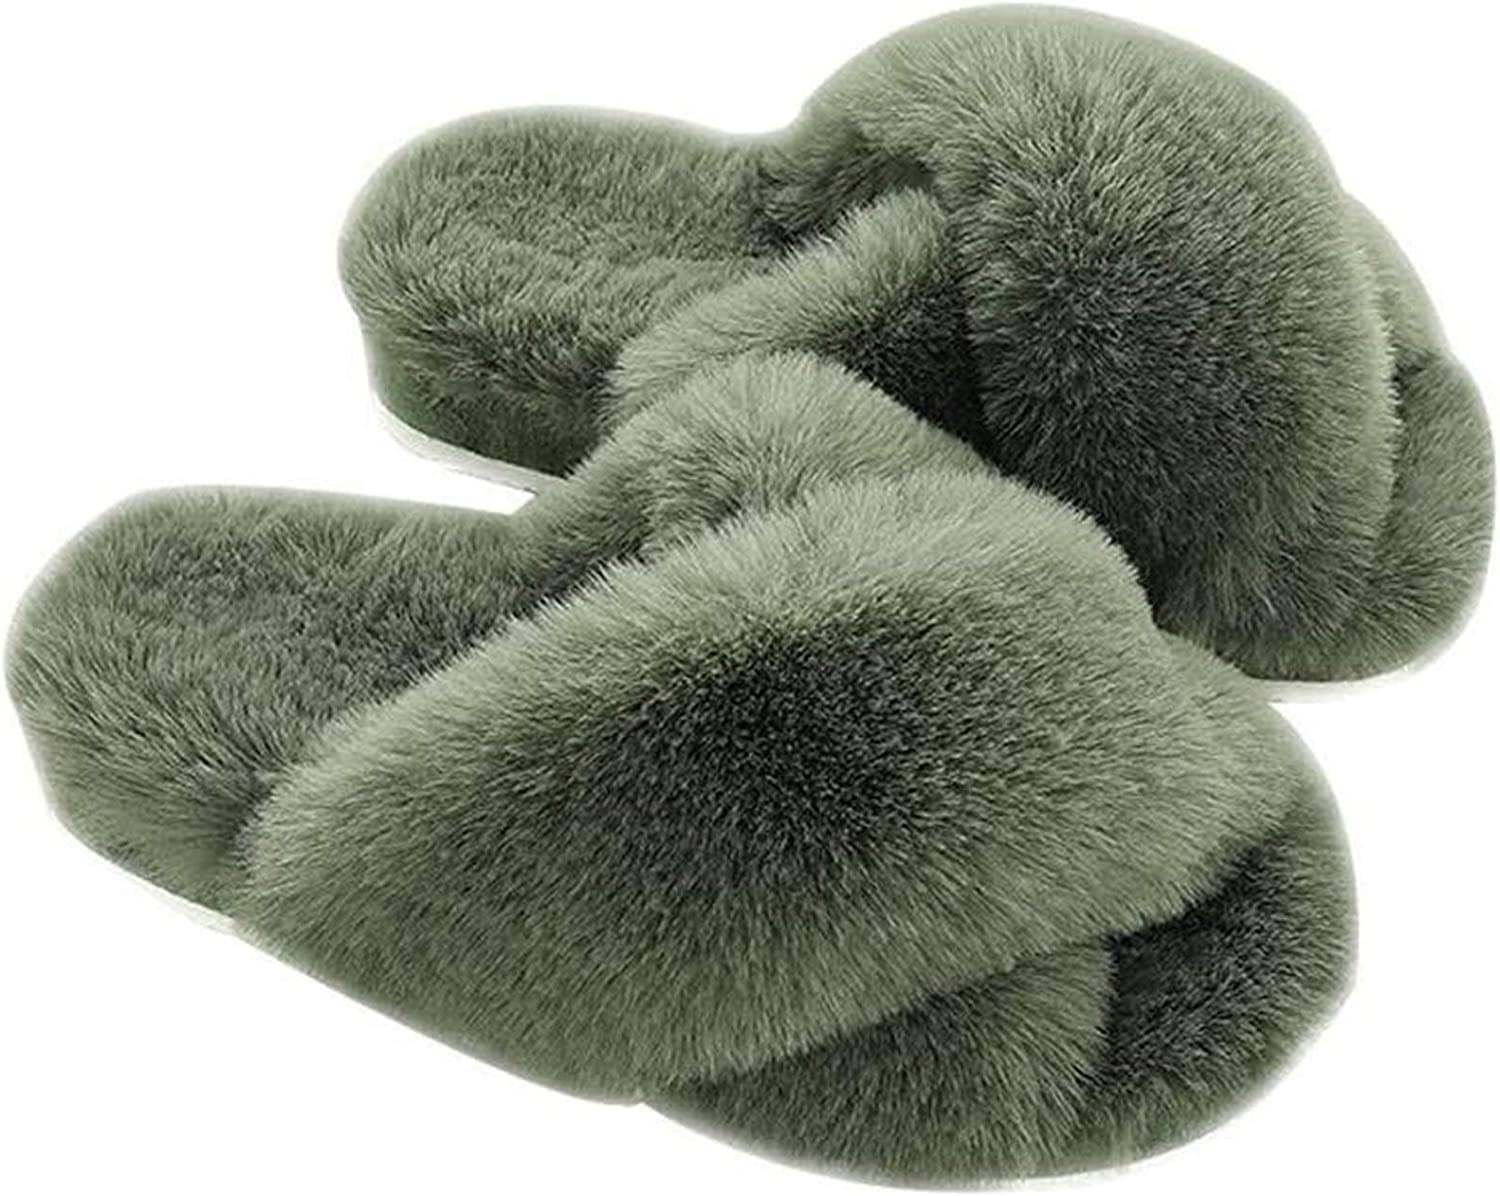 Winter Fluffy Slippers for Womens Fees free!! House Fuzzy M Max 69% OFF Slides